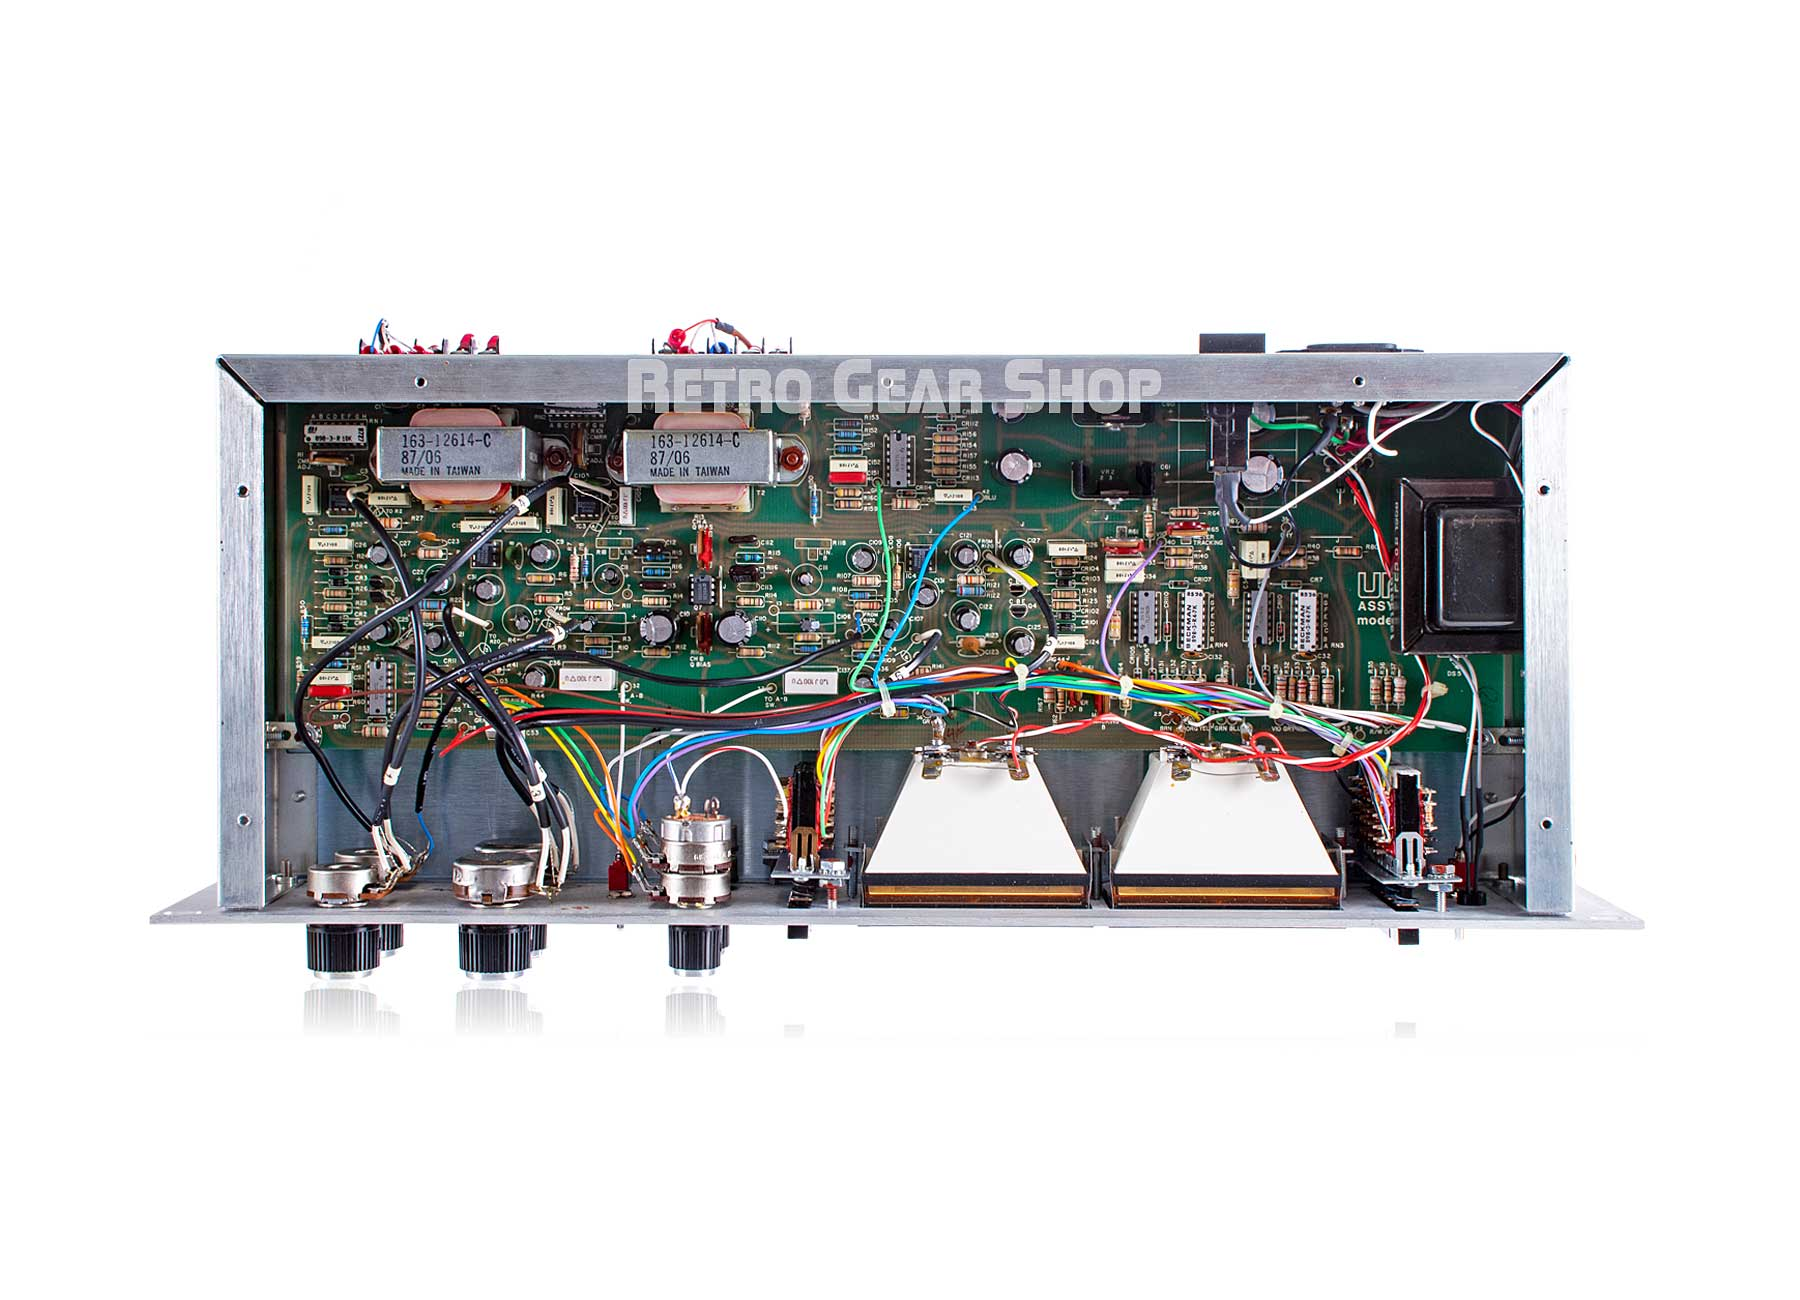 Urei 1178 Stereo Dual Peak Limiter Serviced Internals